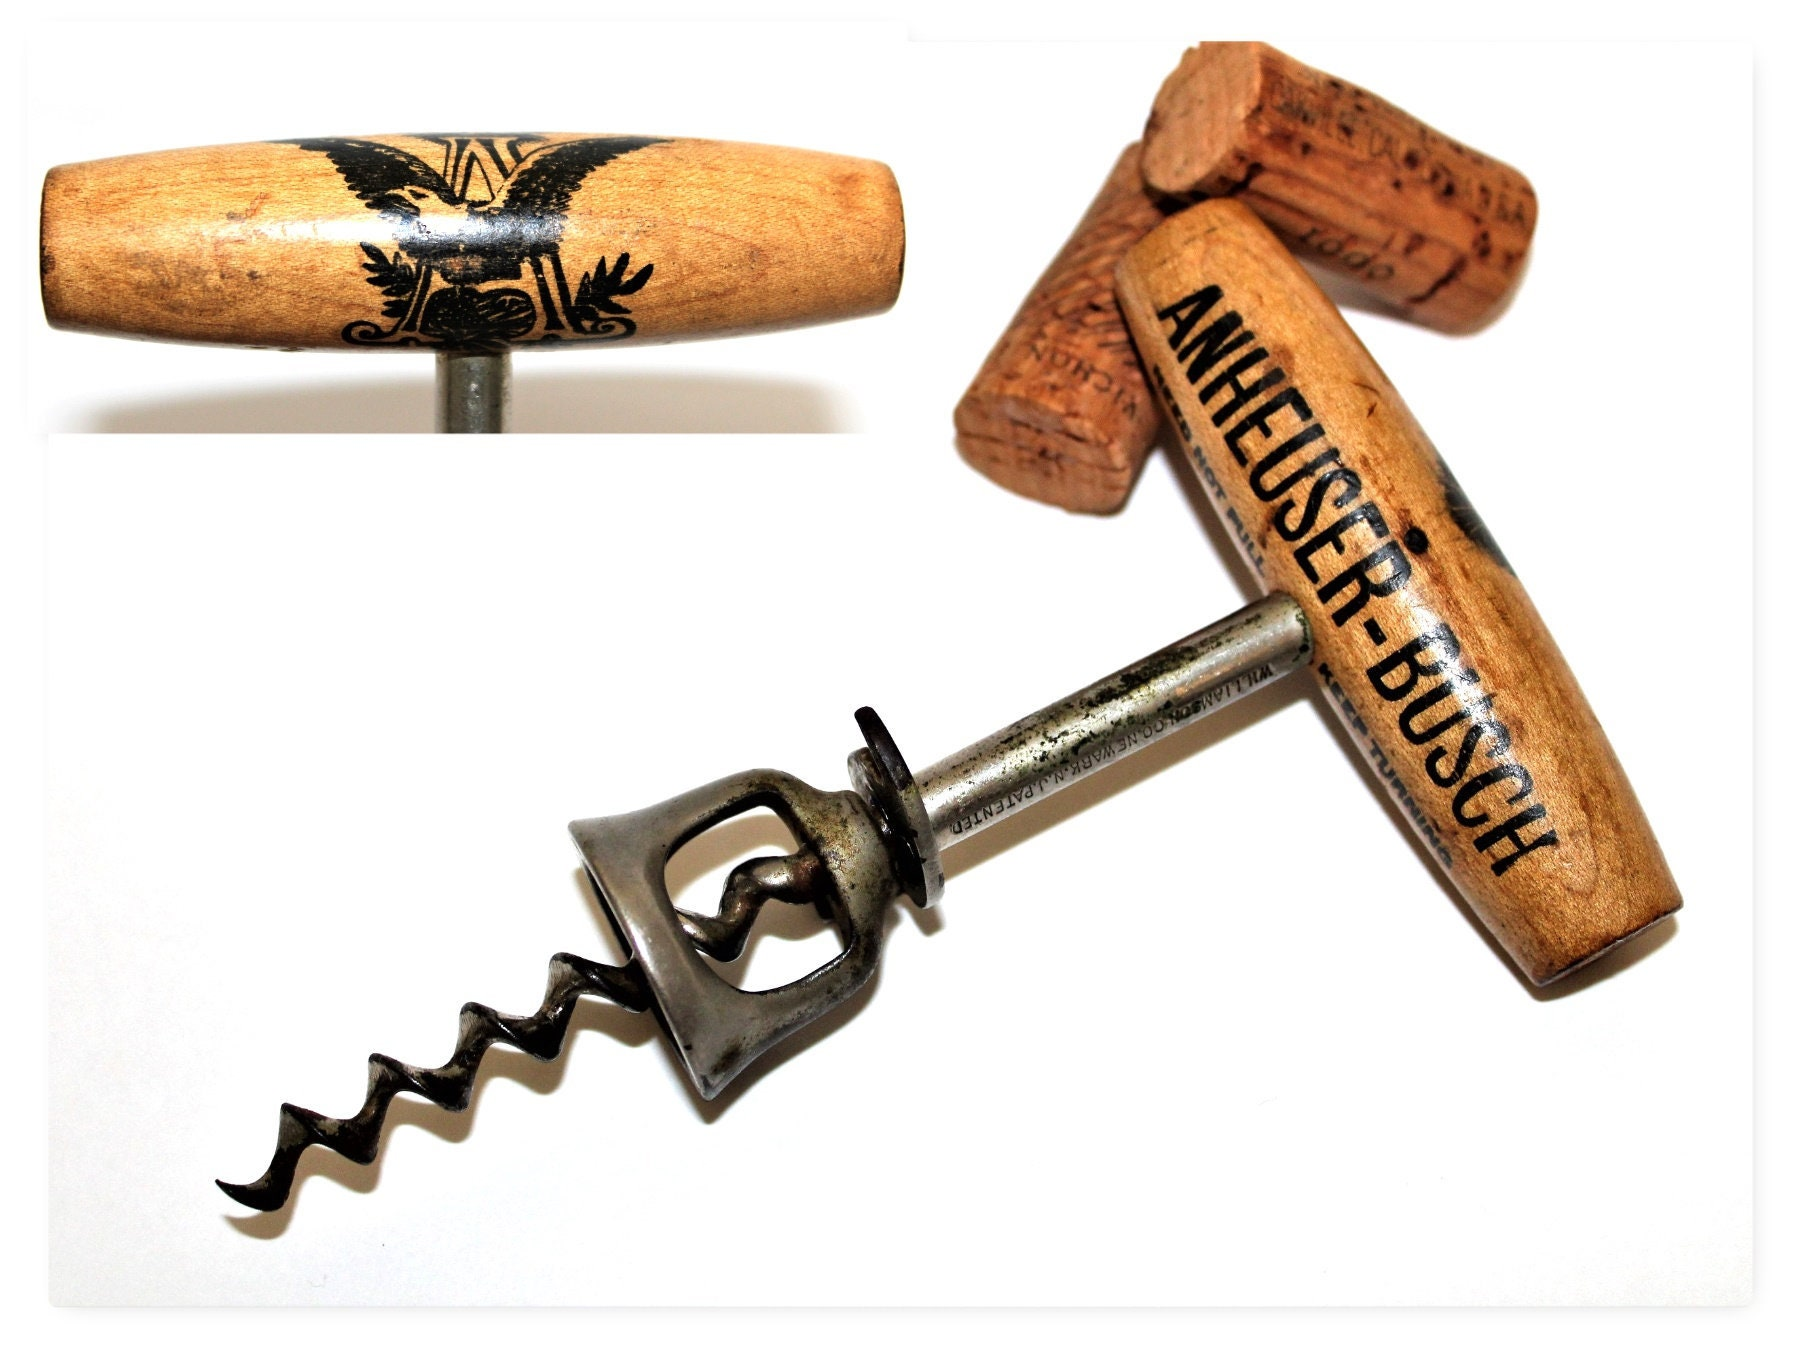 Antique Corkscrew, 1897 Anheuser Busch Beer Corkscrew